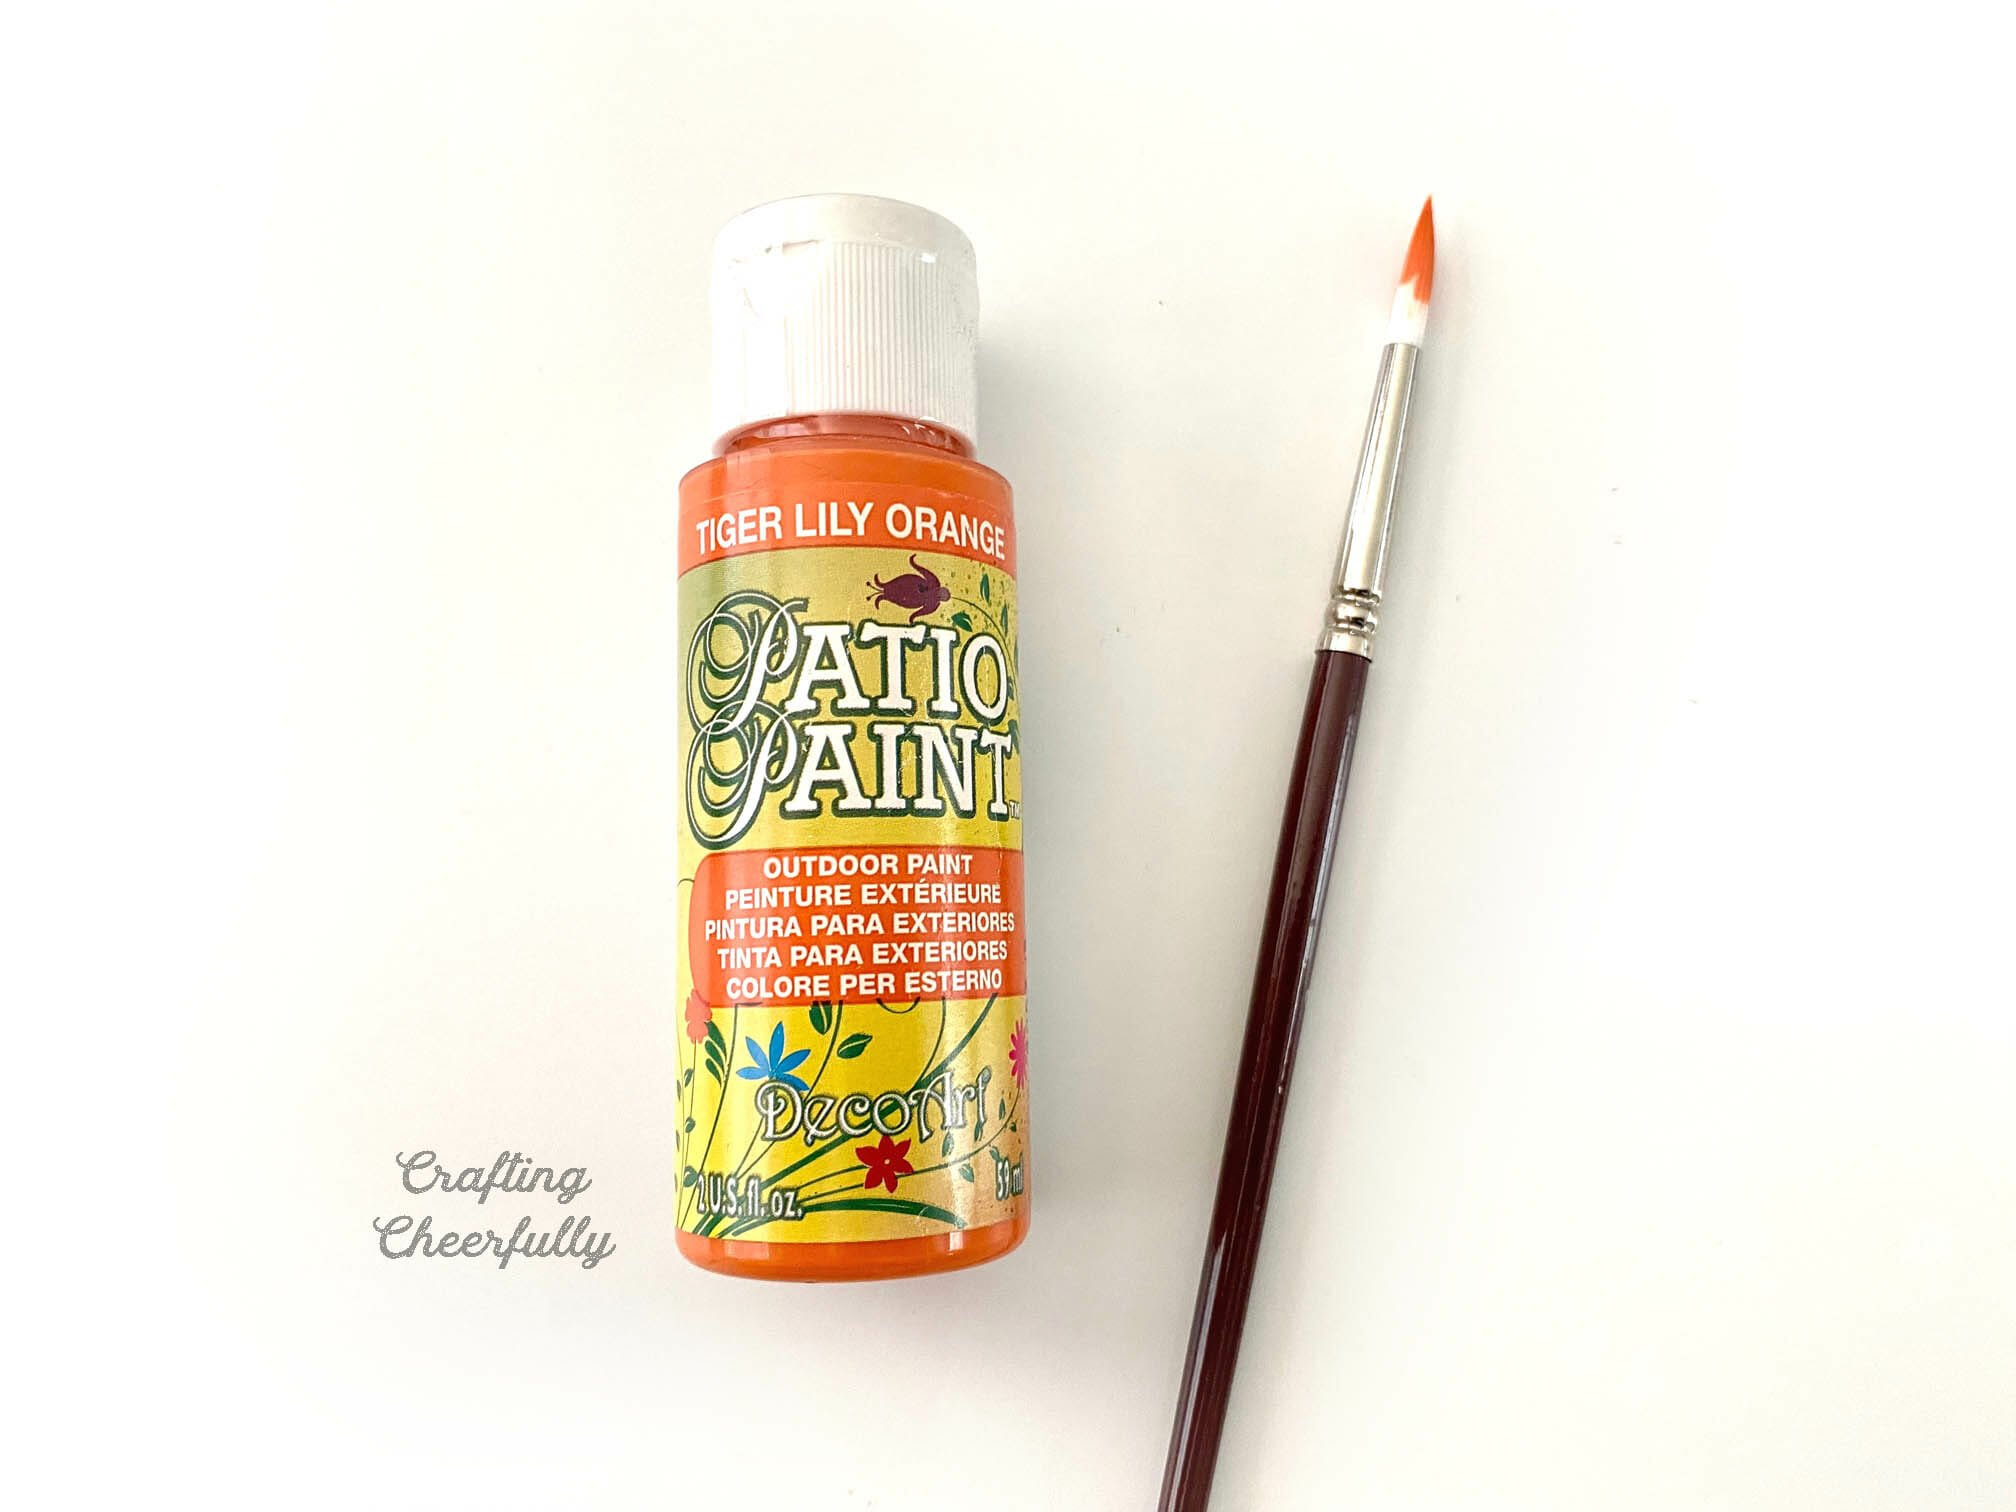 A tube of orange paint lays next to a paint brush with orange paint on the tip.